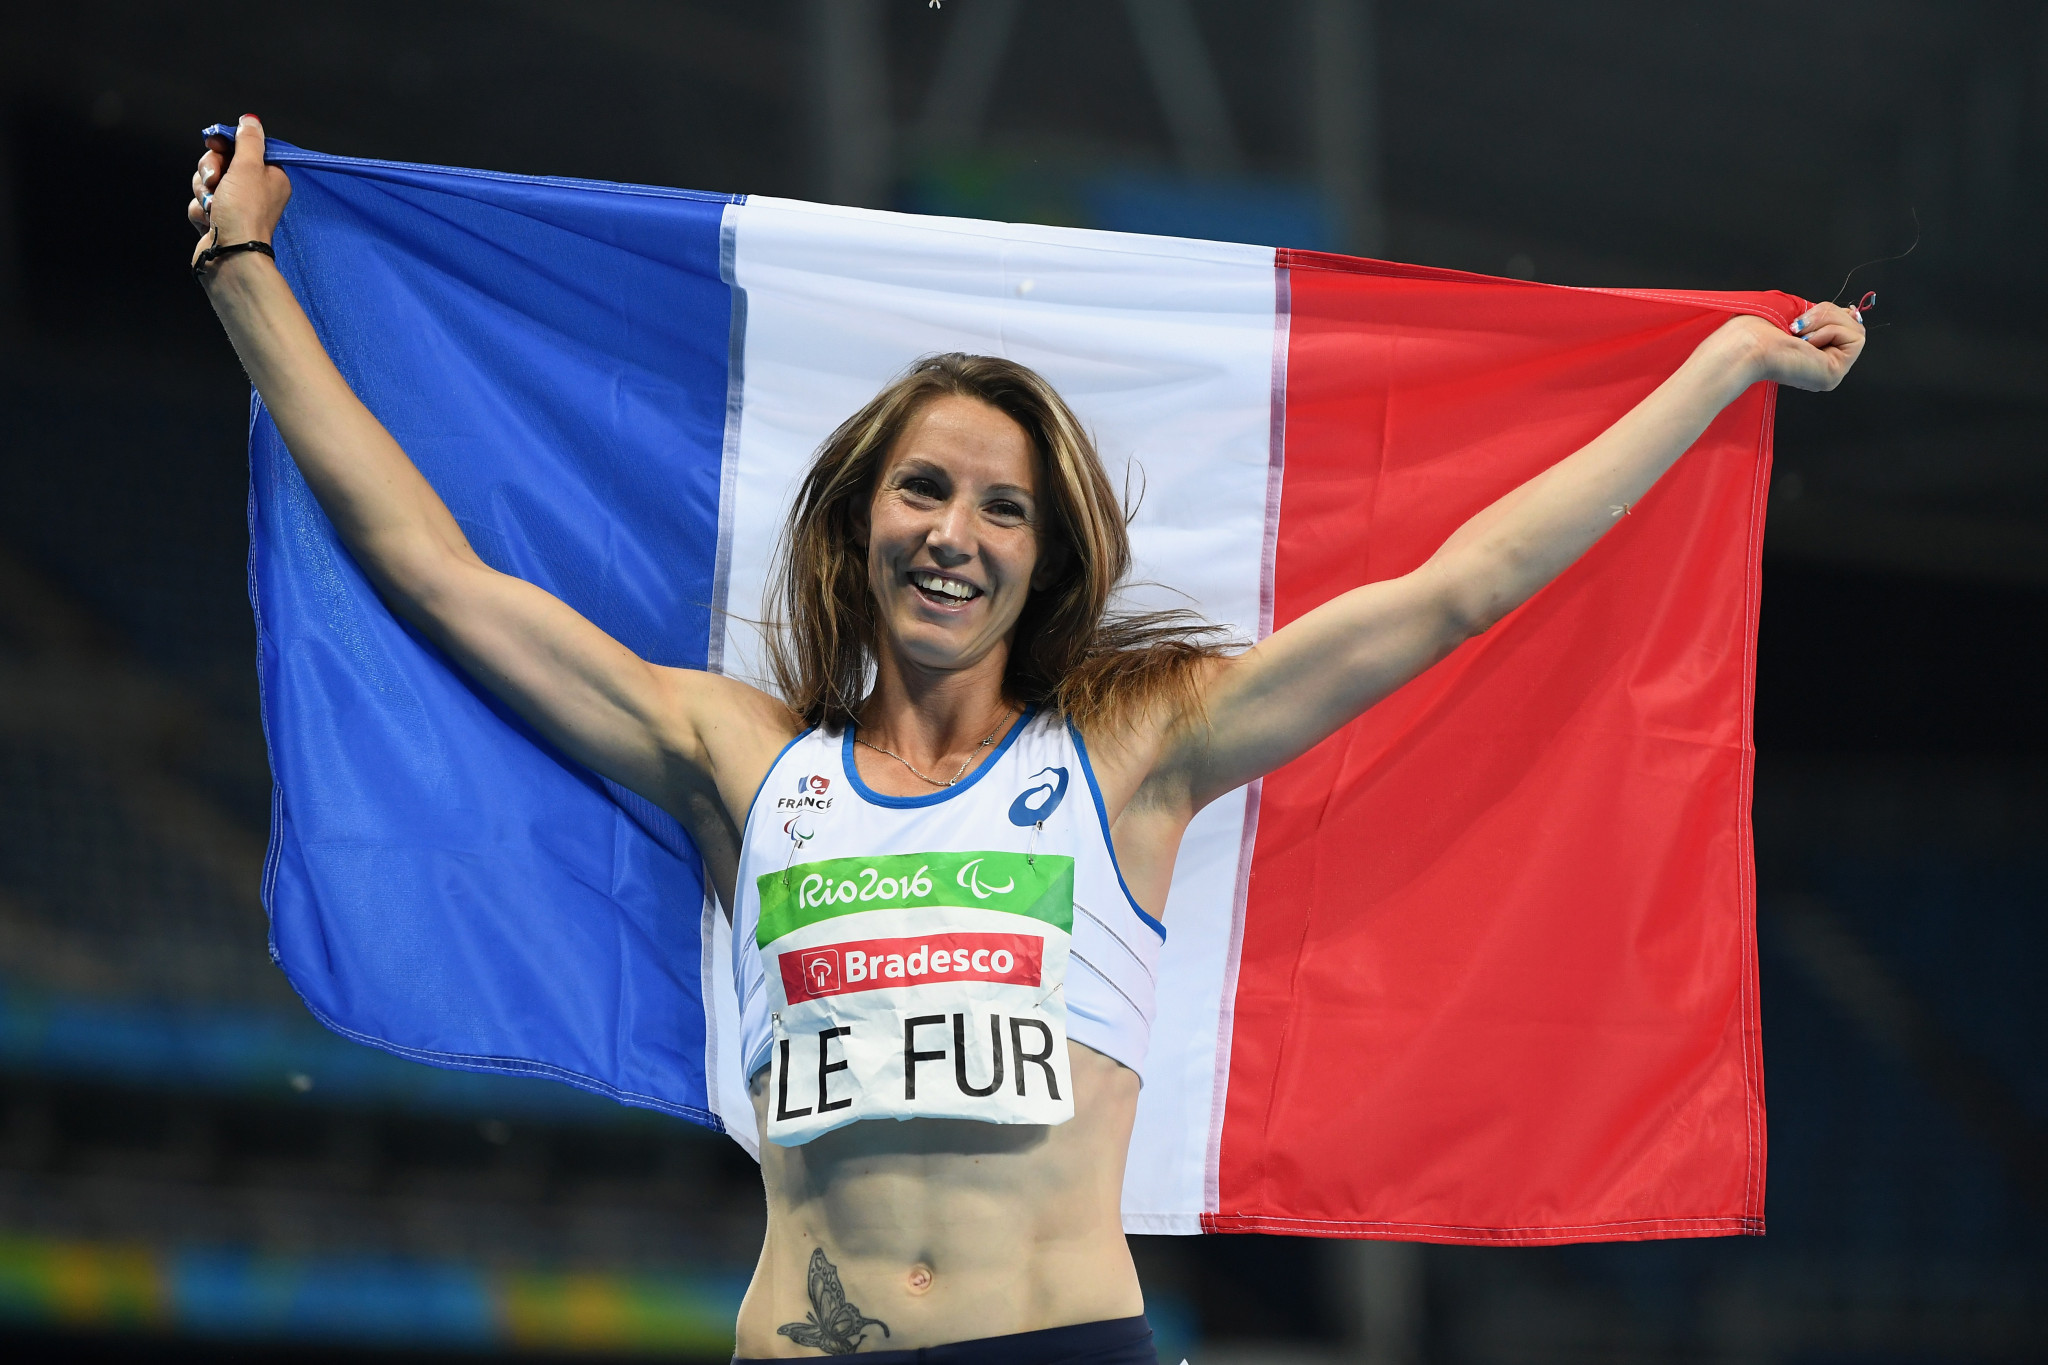 Marie-Amélie Le Fur has won three Paralympic gold medals ©Getty Images